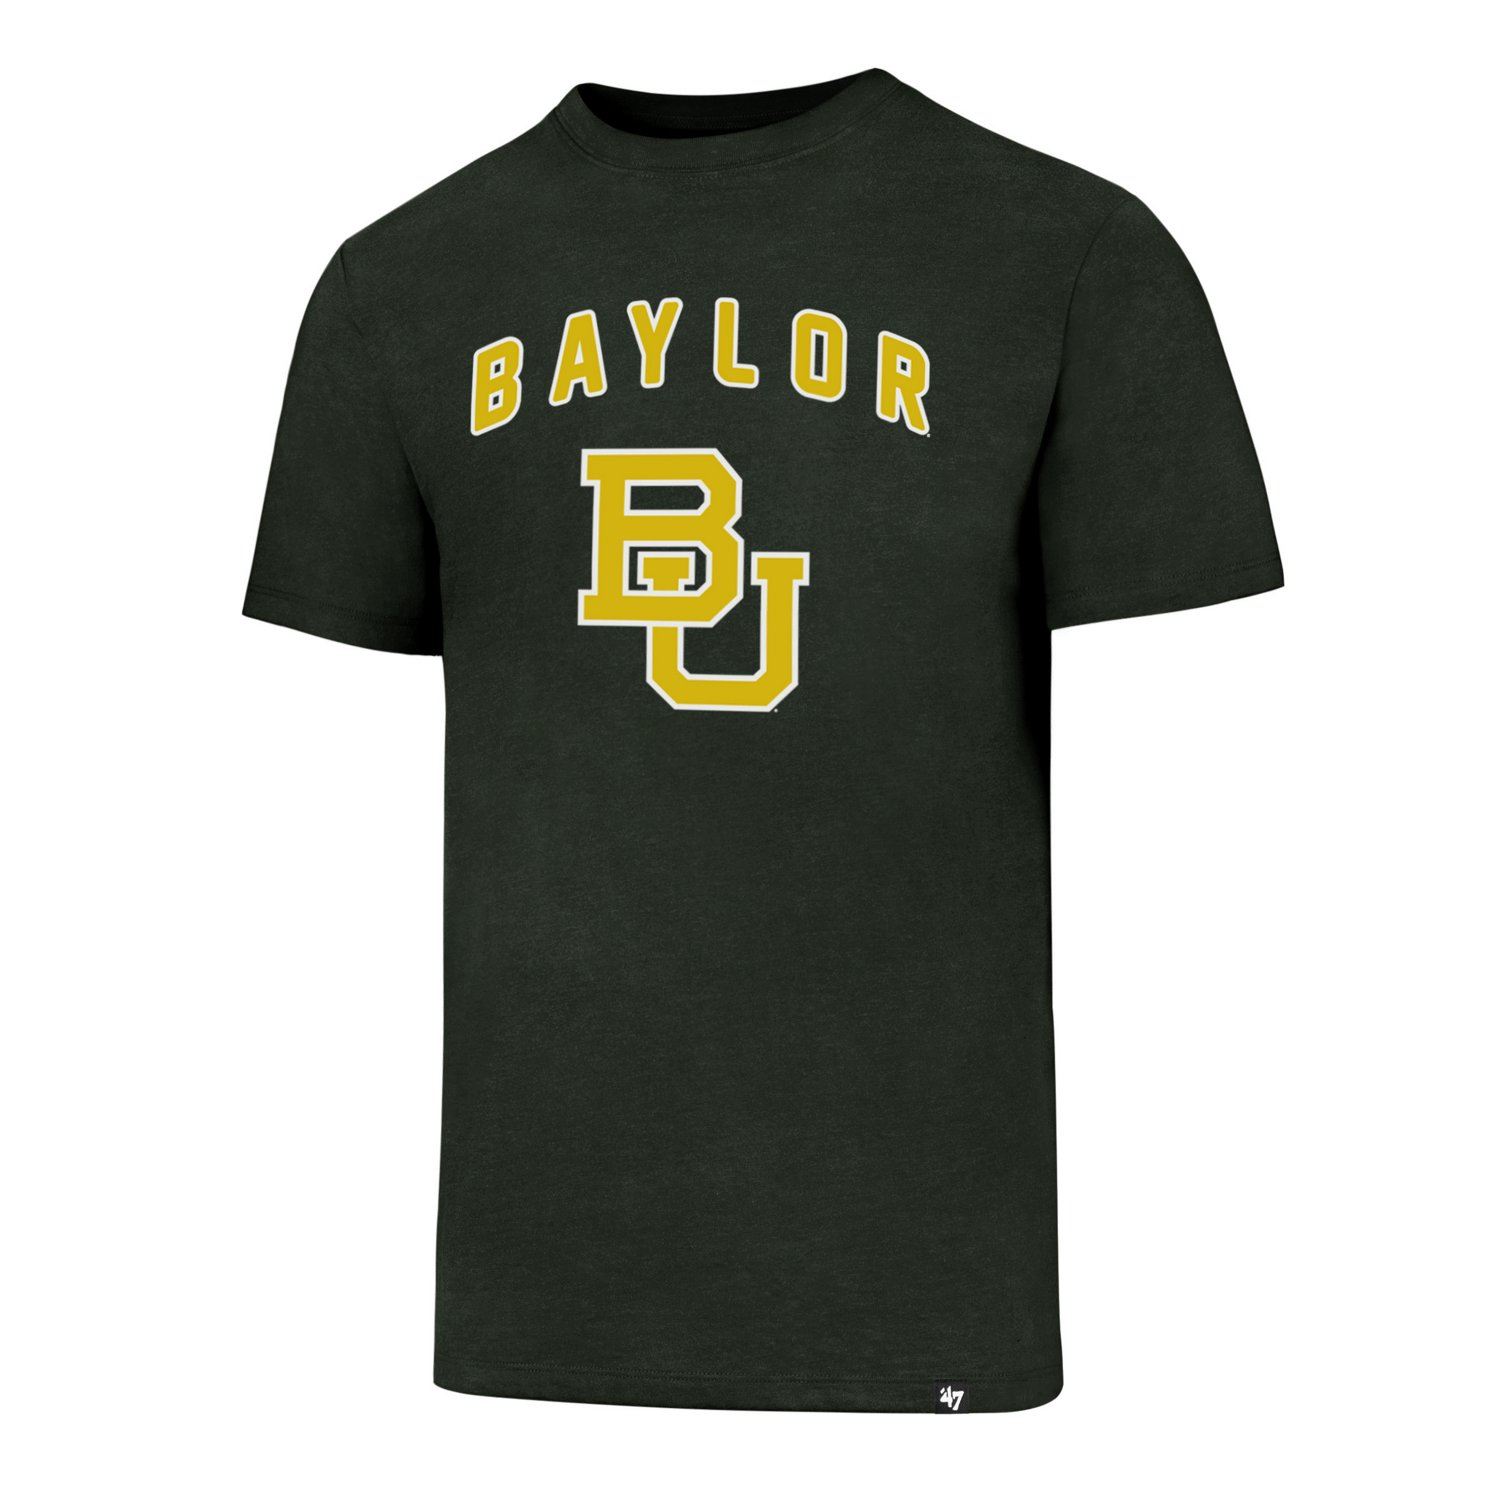 '47 Baylor University Primary Logo Club T-shirt